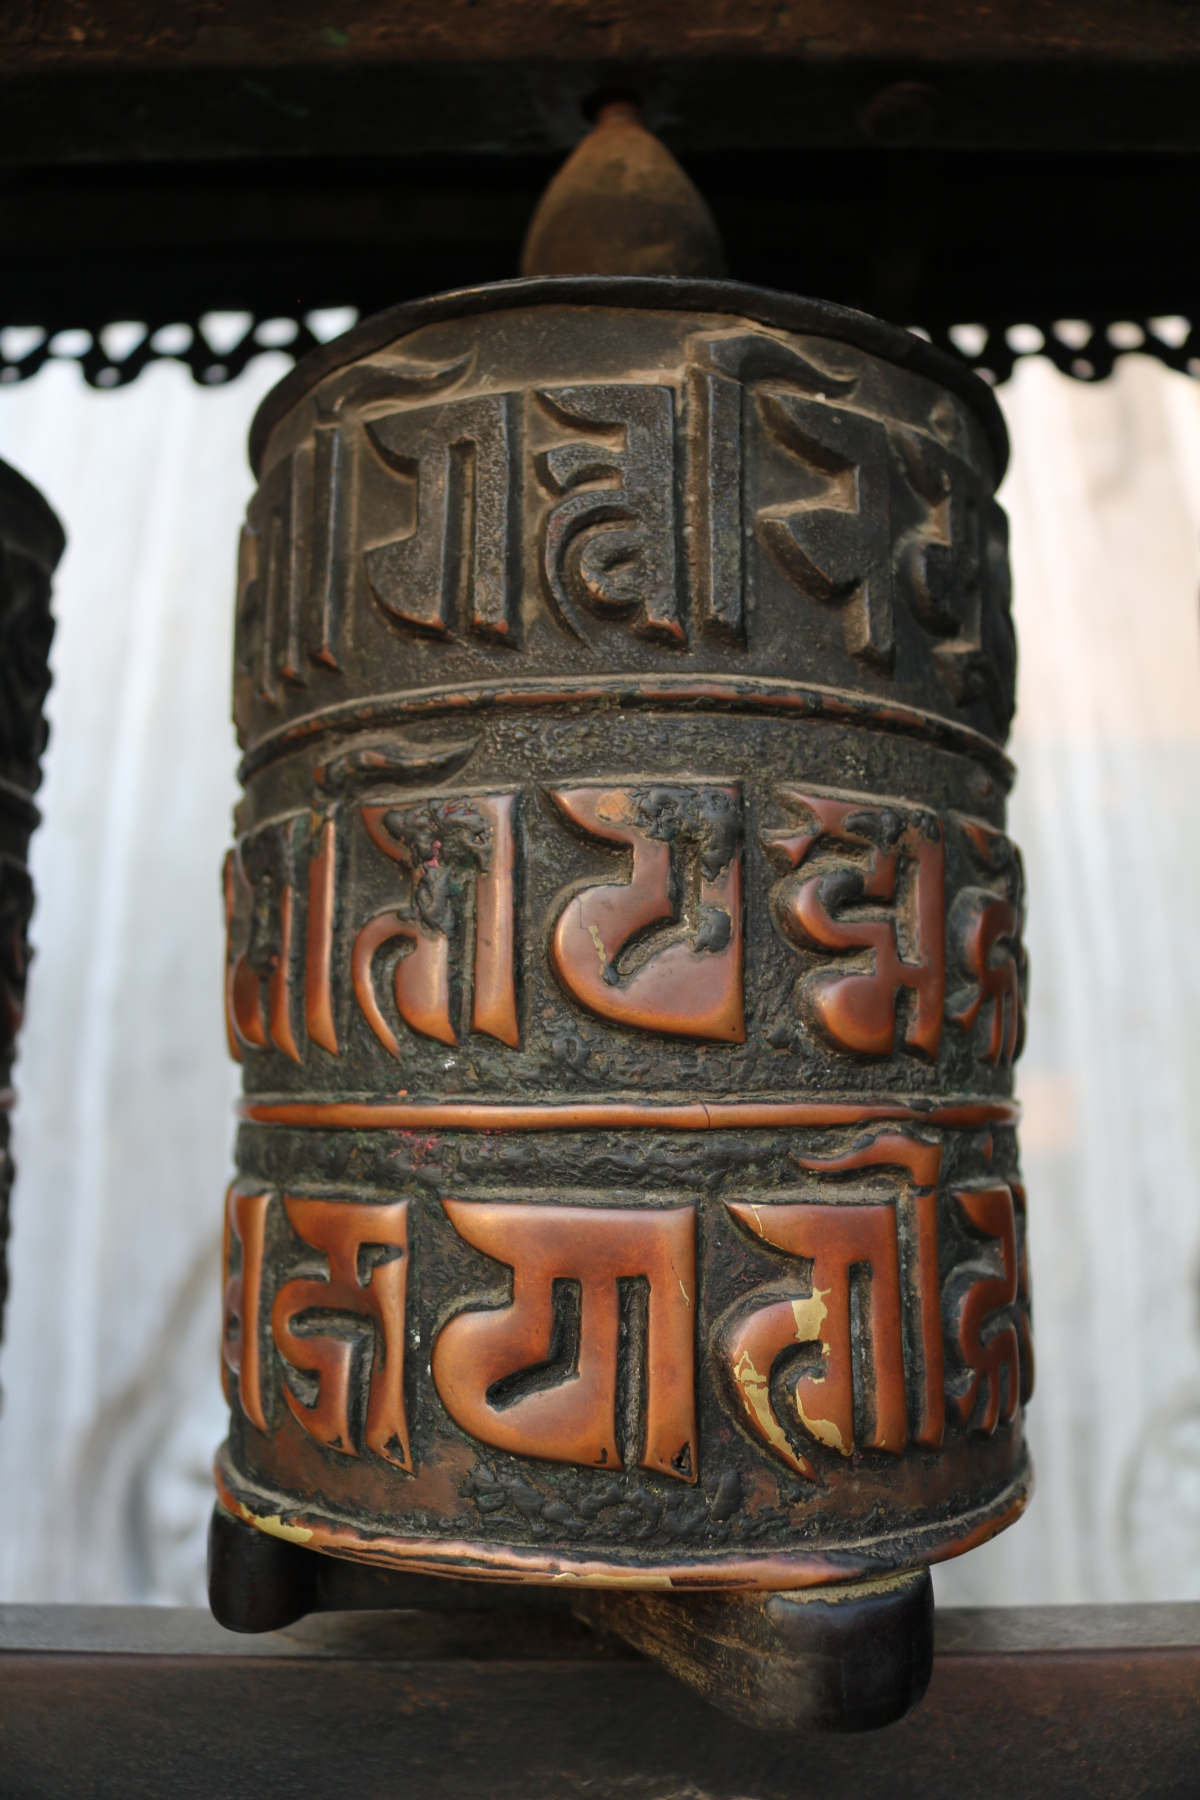 Prayer wheel at Swayambhunath Stupa